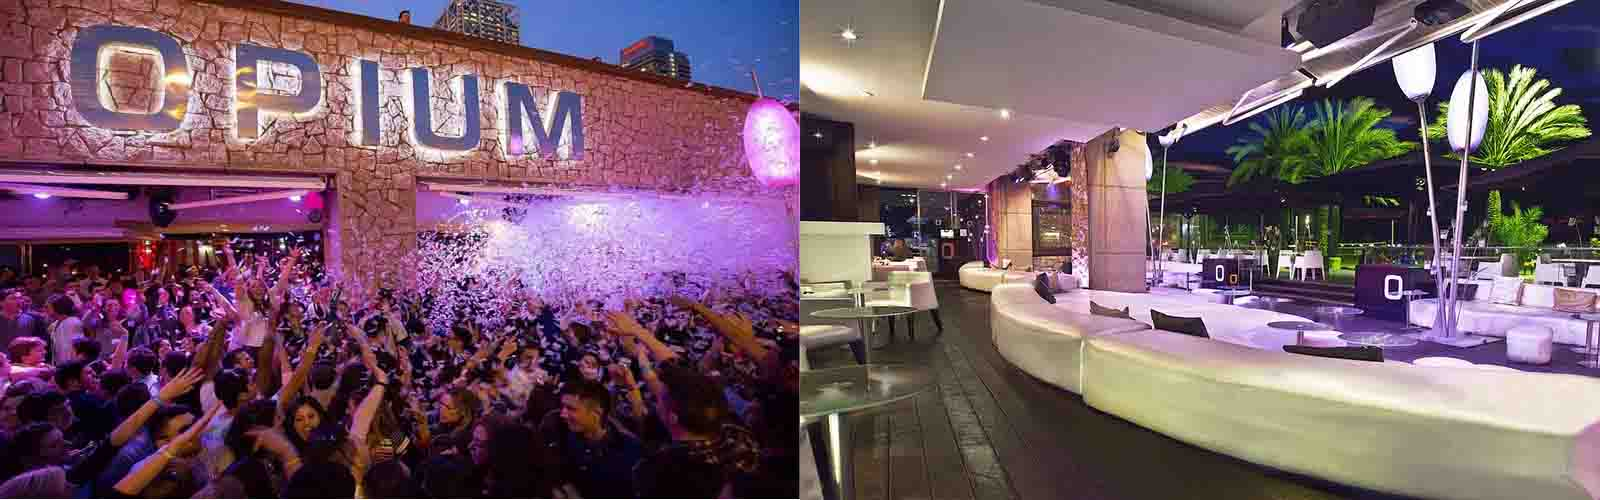 Party at this well known venue, Nightclub Opium Barcelona